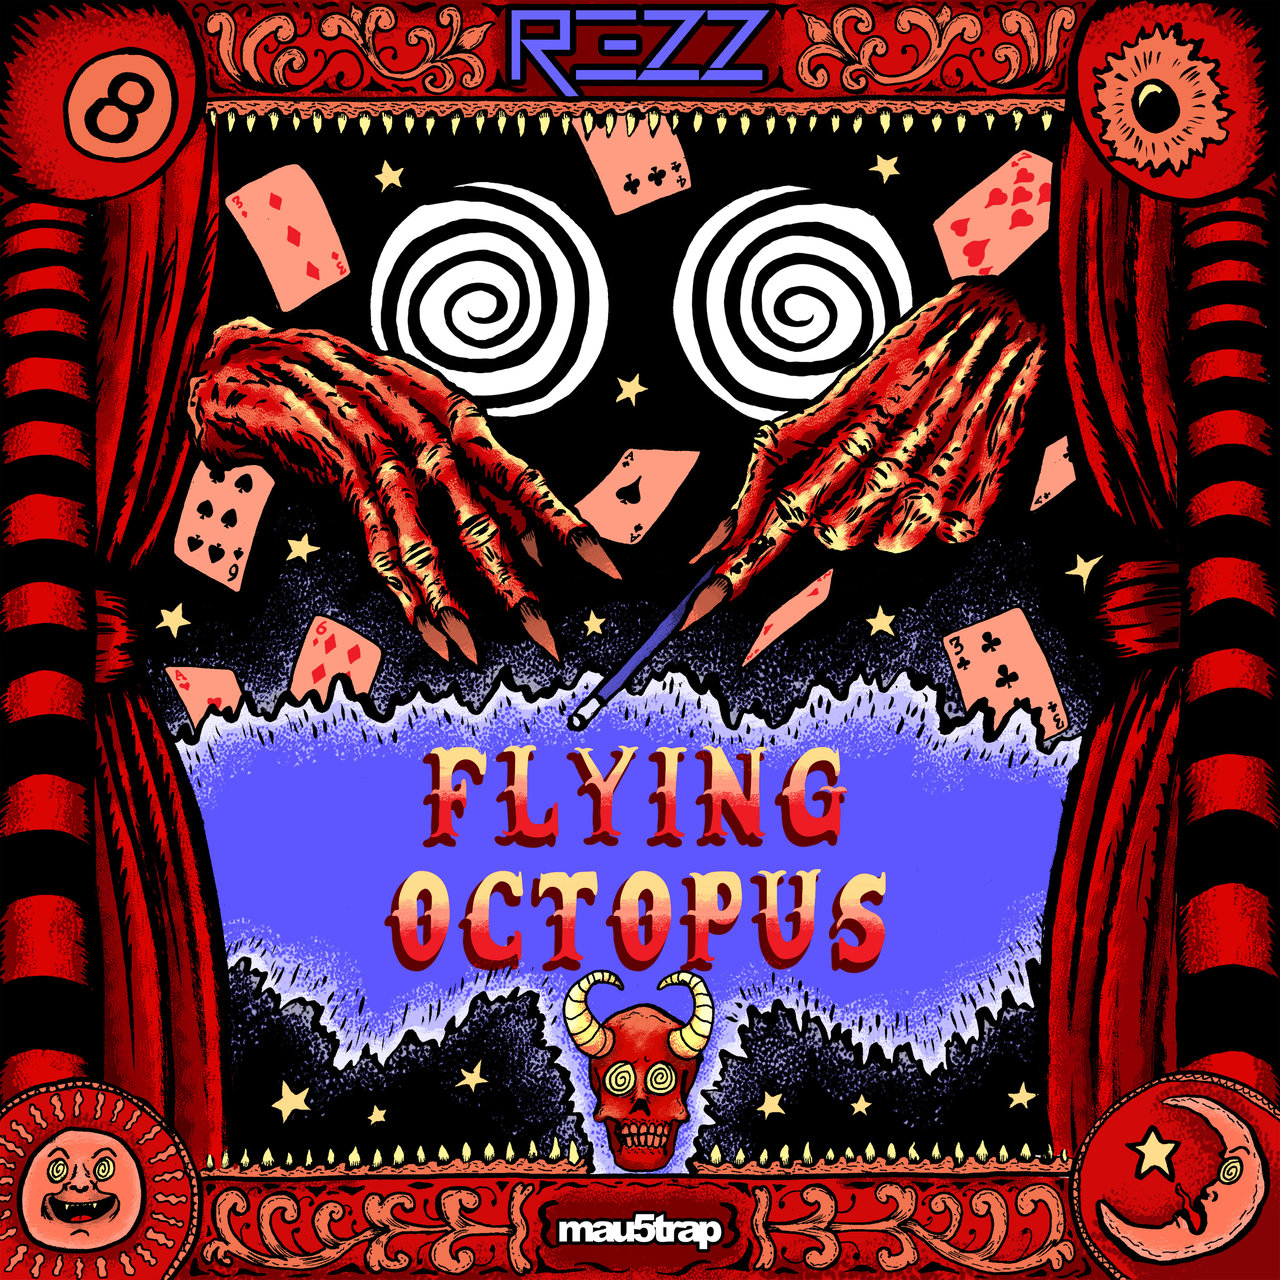 Flying Octopus